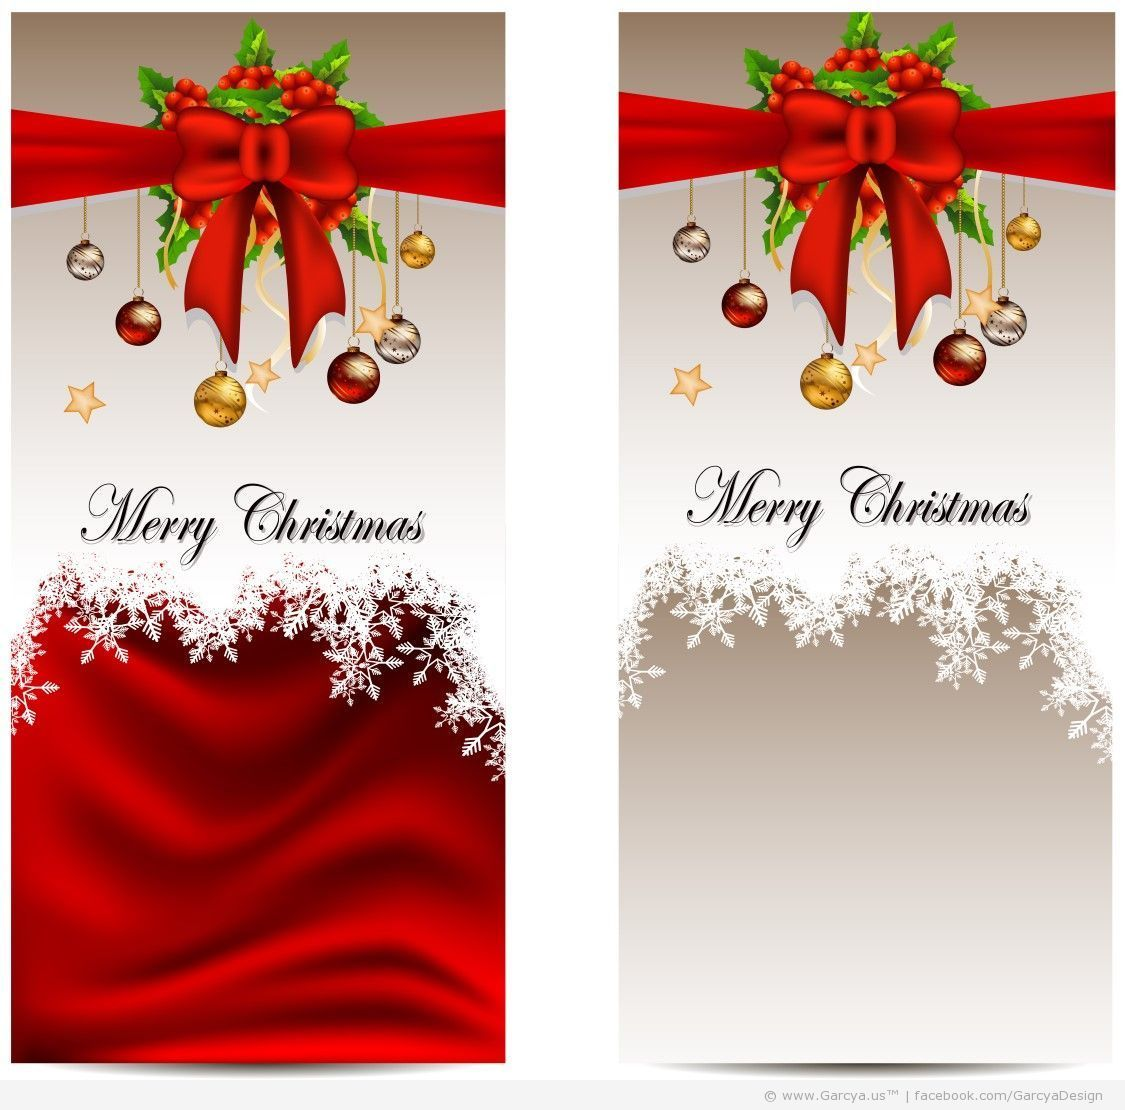 The Astonishing 004 Free Holiday Card Template Download Christmas Templates With Regar Christmas Card Template Free Holiday Cards Christmas Photo Card Template